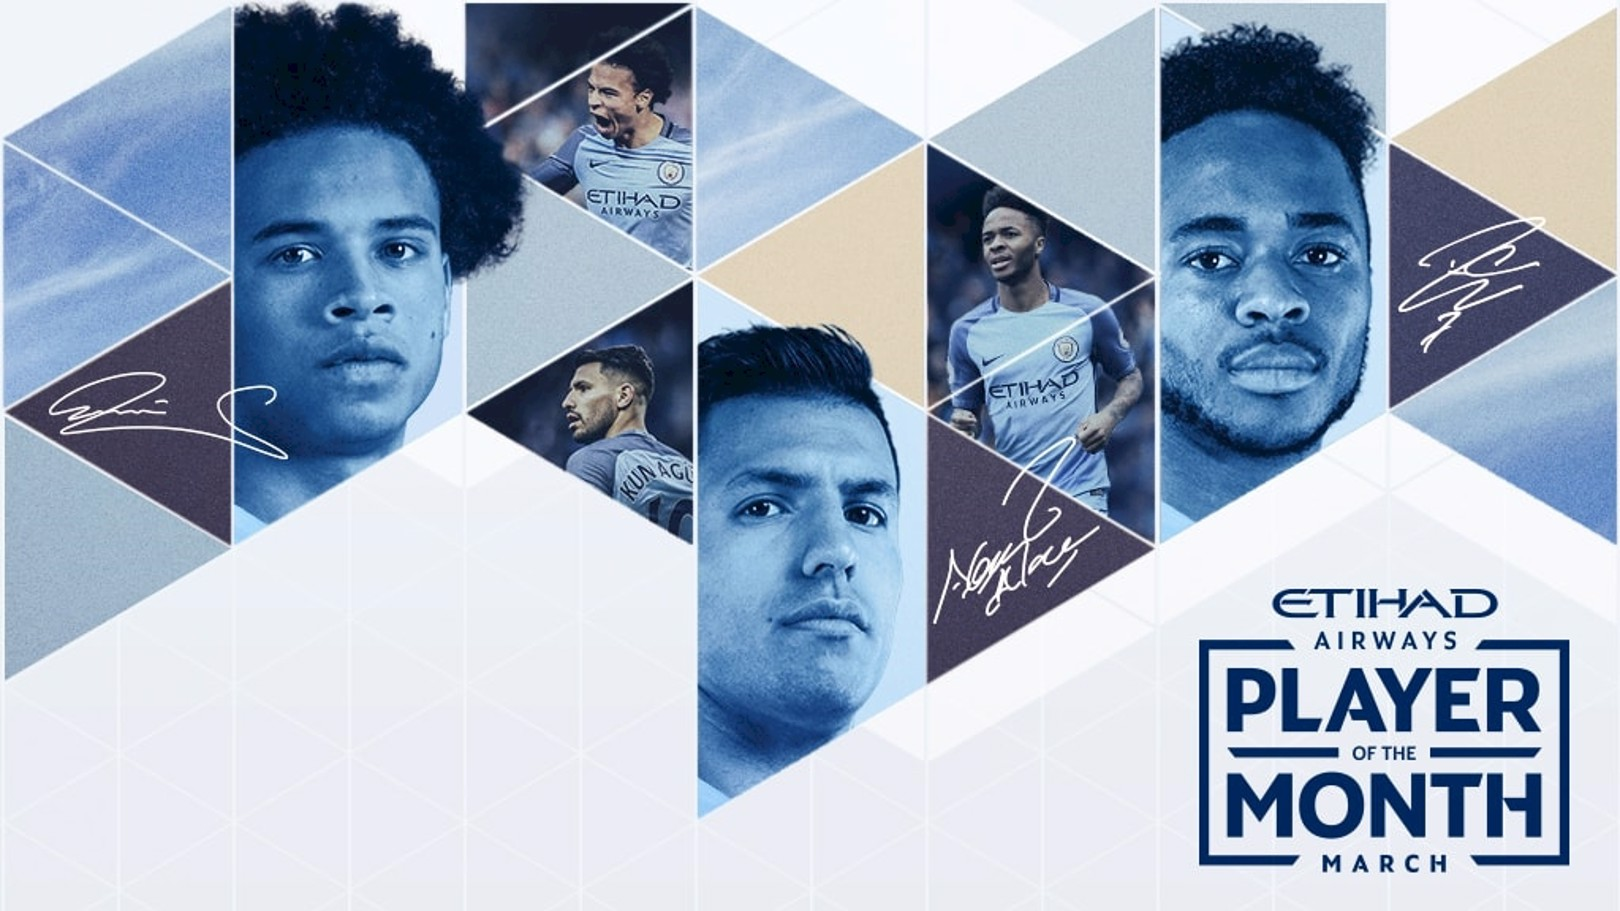 ETIHAD POTM NOMINEES: Who will you vote for?